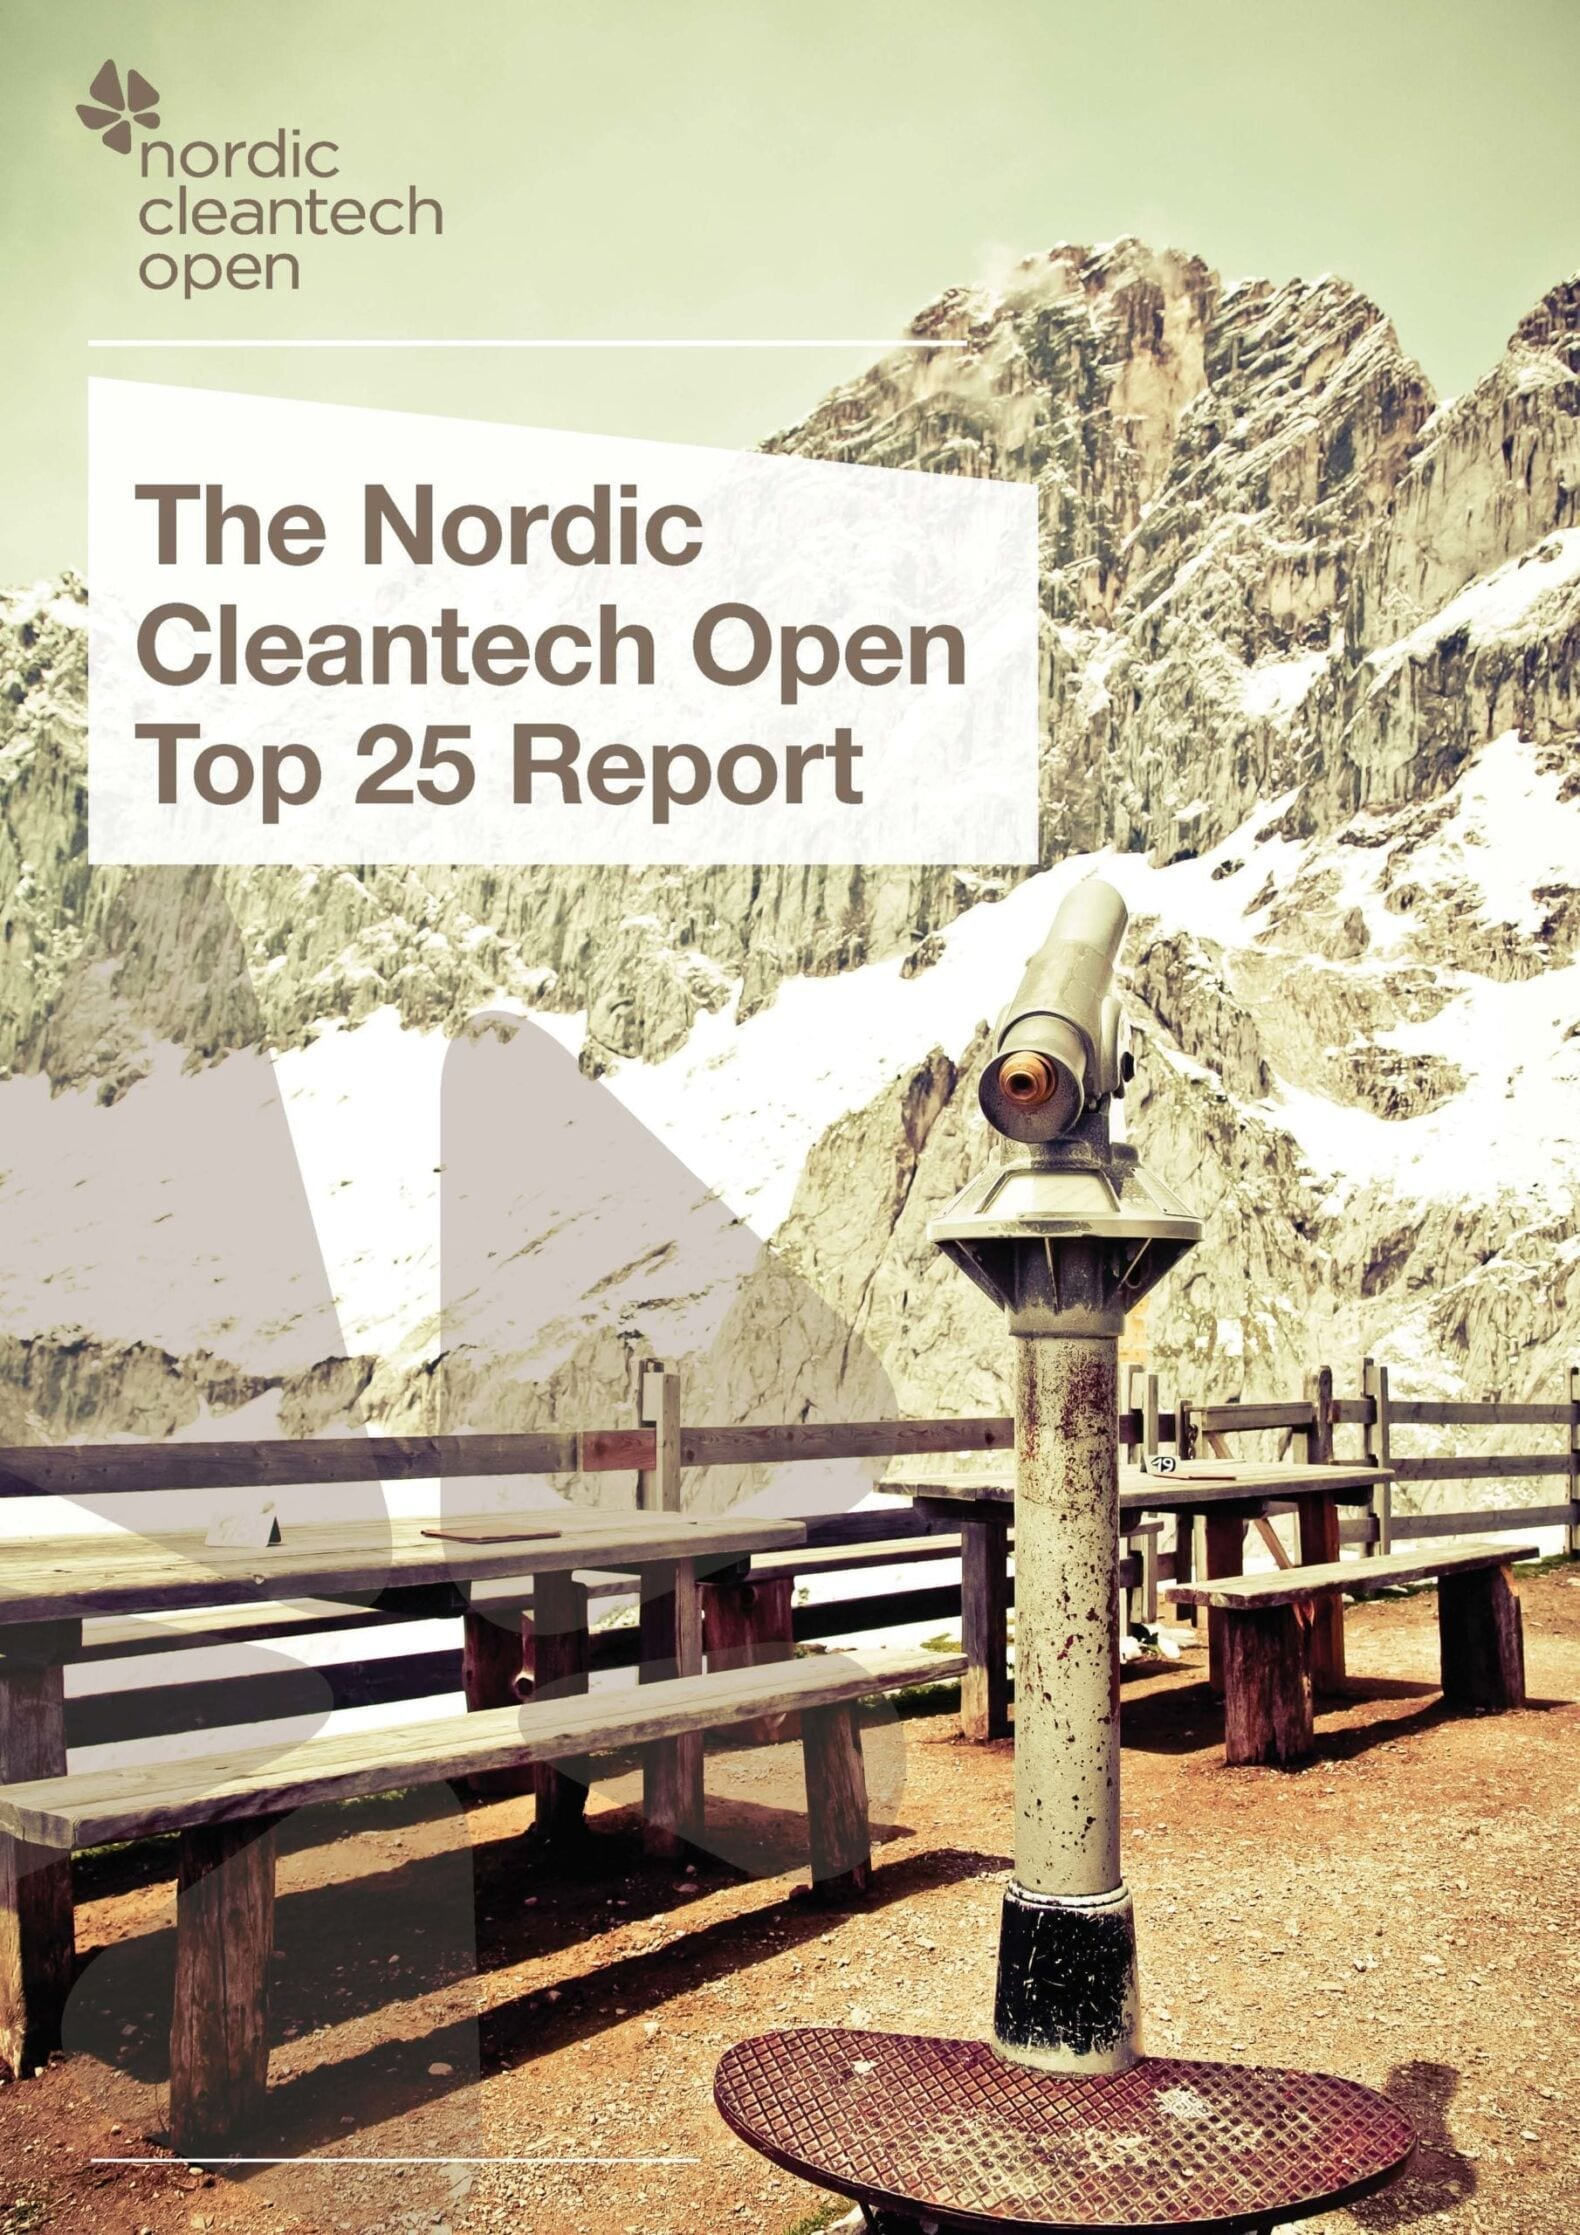 Top 25 Reports - Cycle 2016/17